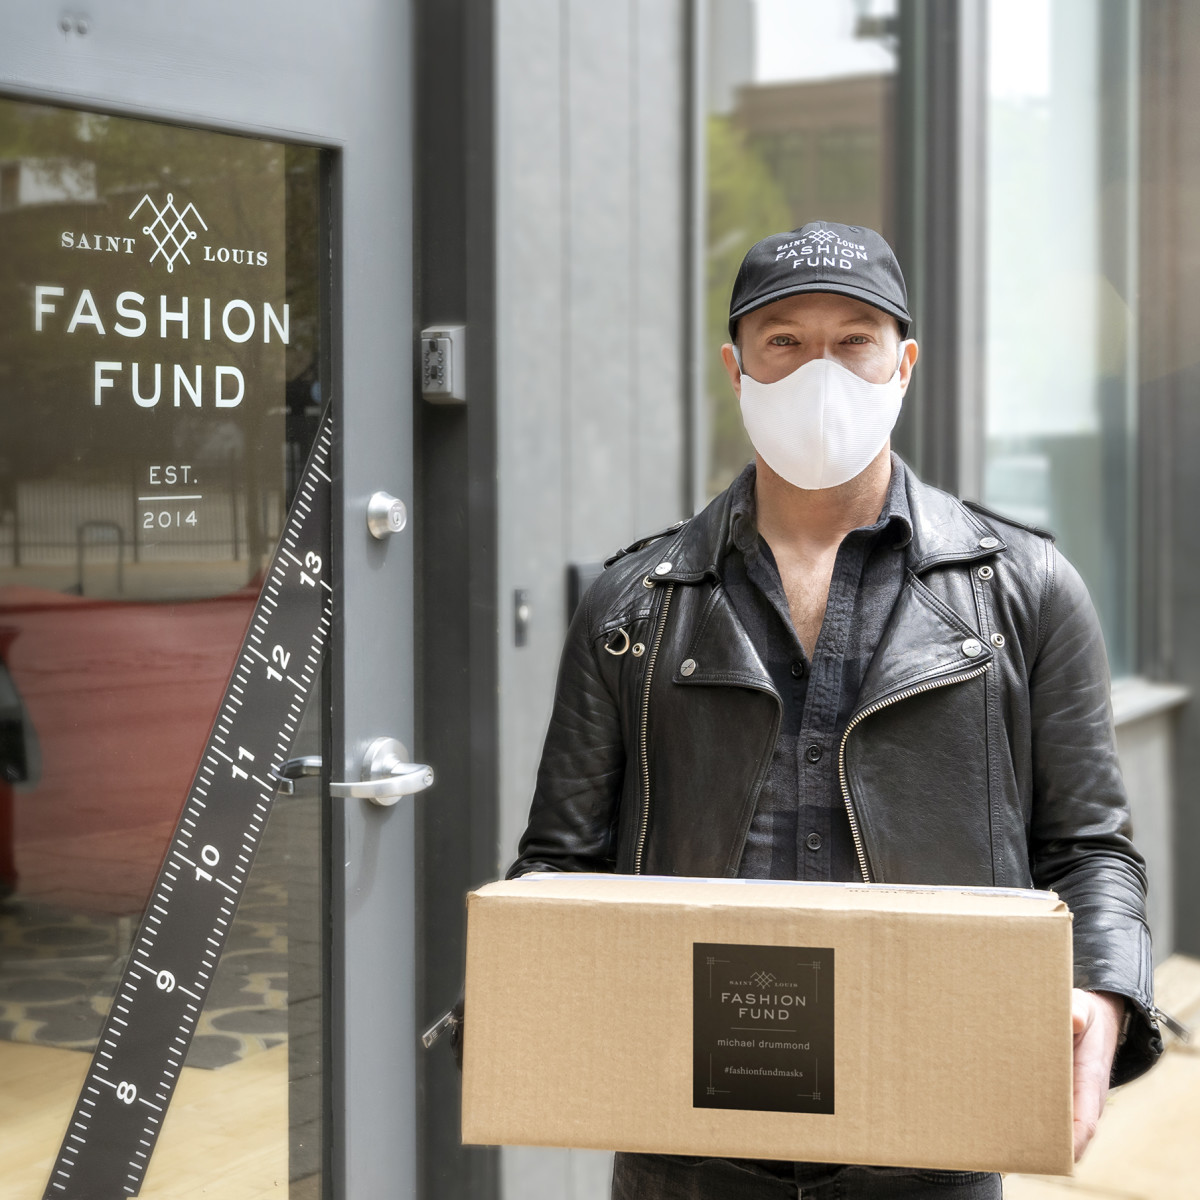 Saint Louis Fashion Fund Lab designer Michael Drummond, who spearheaded the Fund's mask initiative to provide 14,000 masks for healthcare and frontline workers.